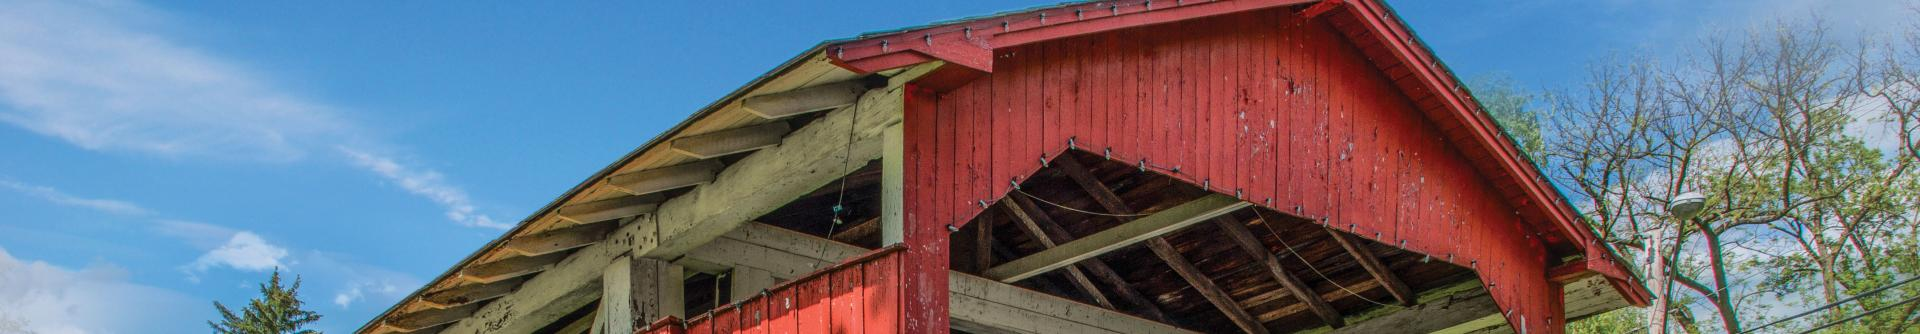 Bogert's Covered Bridge, Lehigh Valley, PA